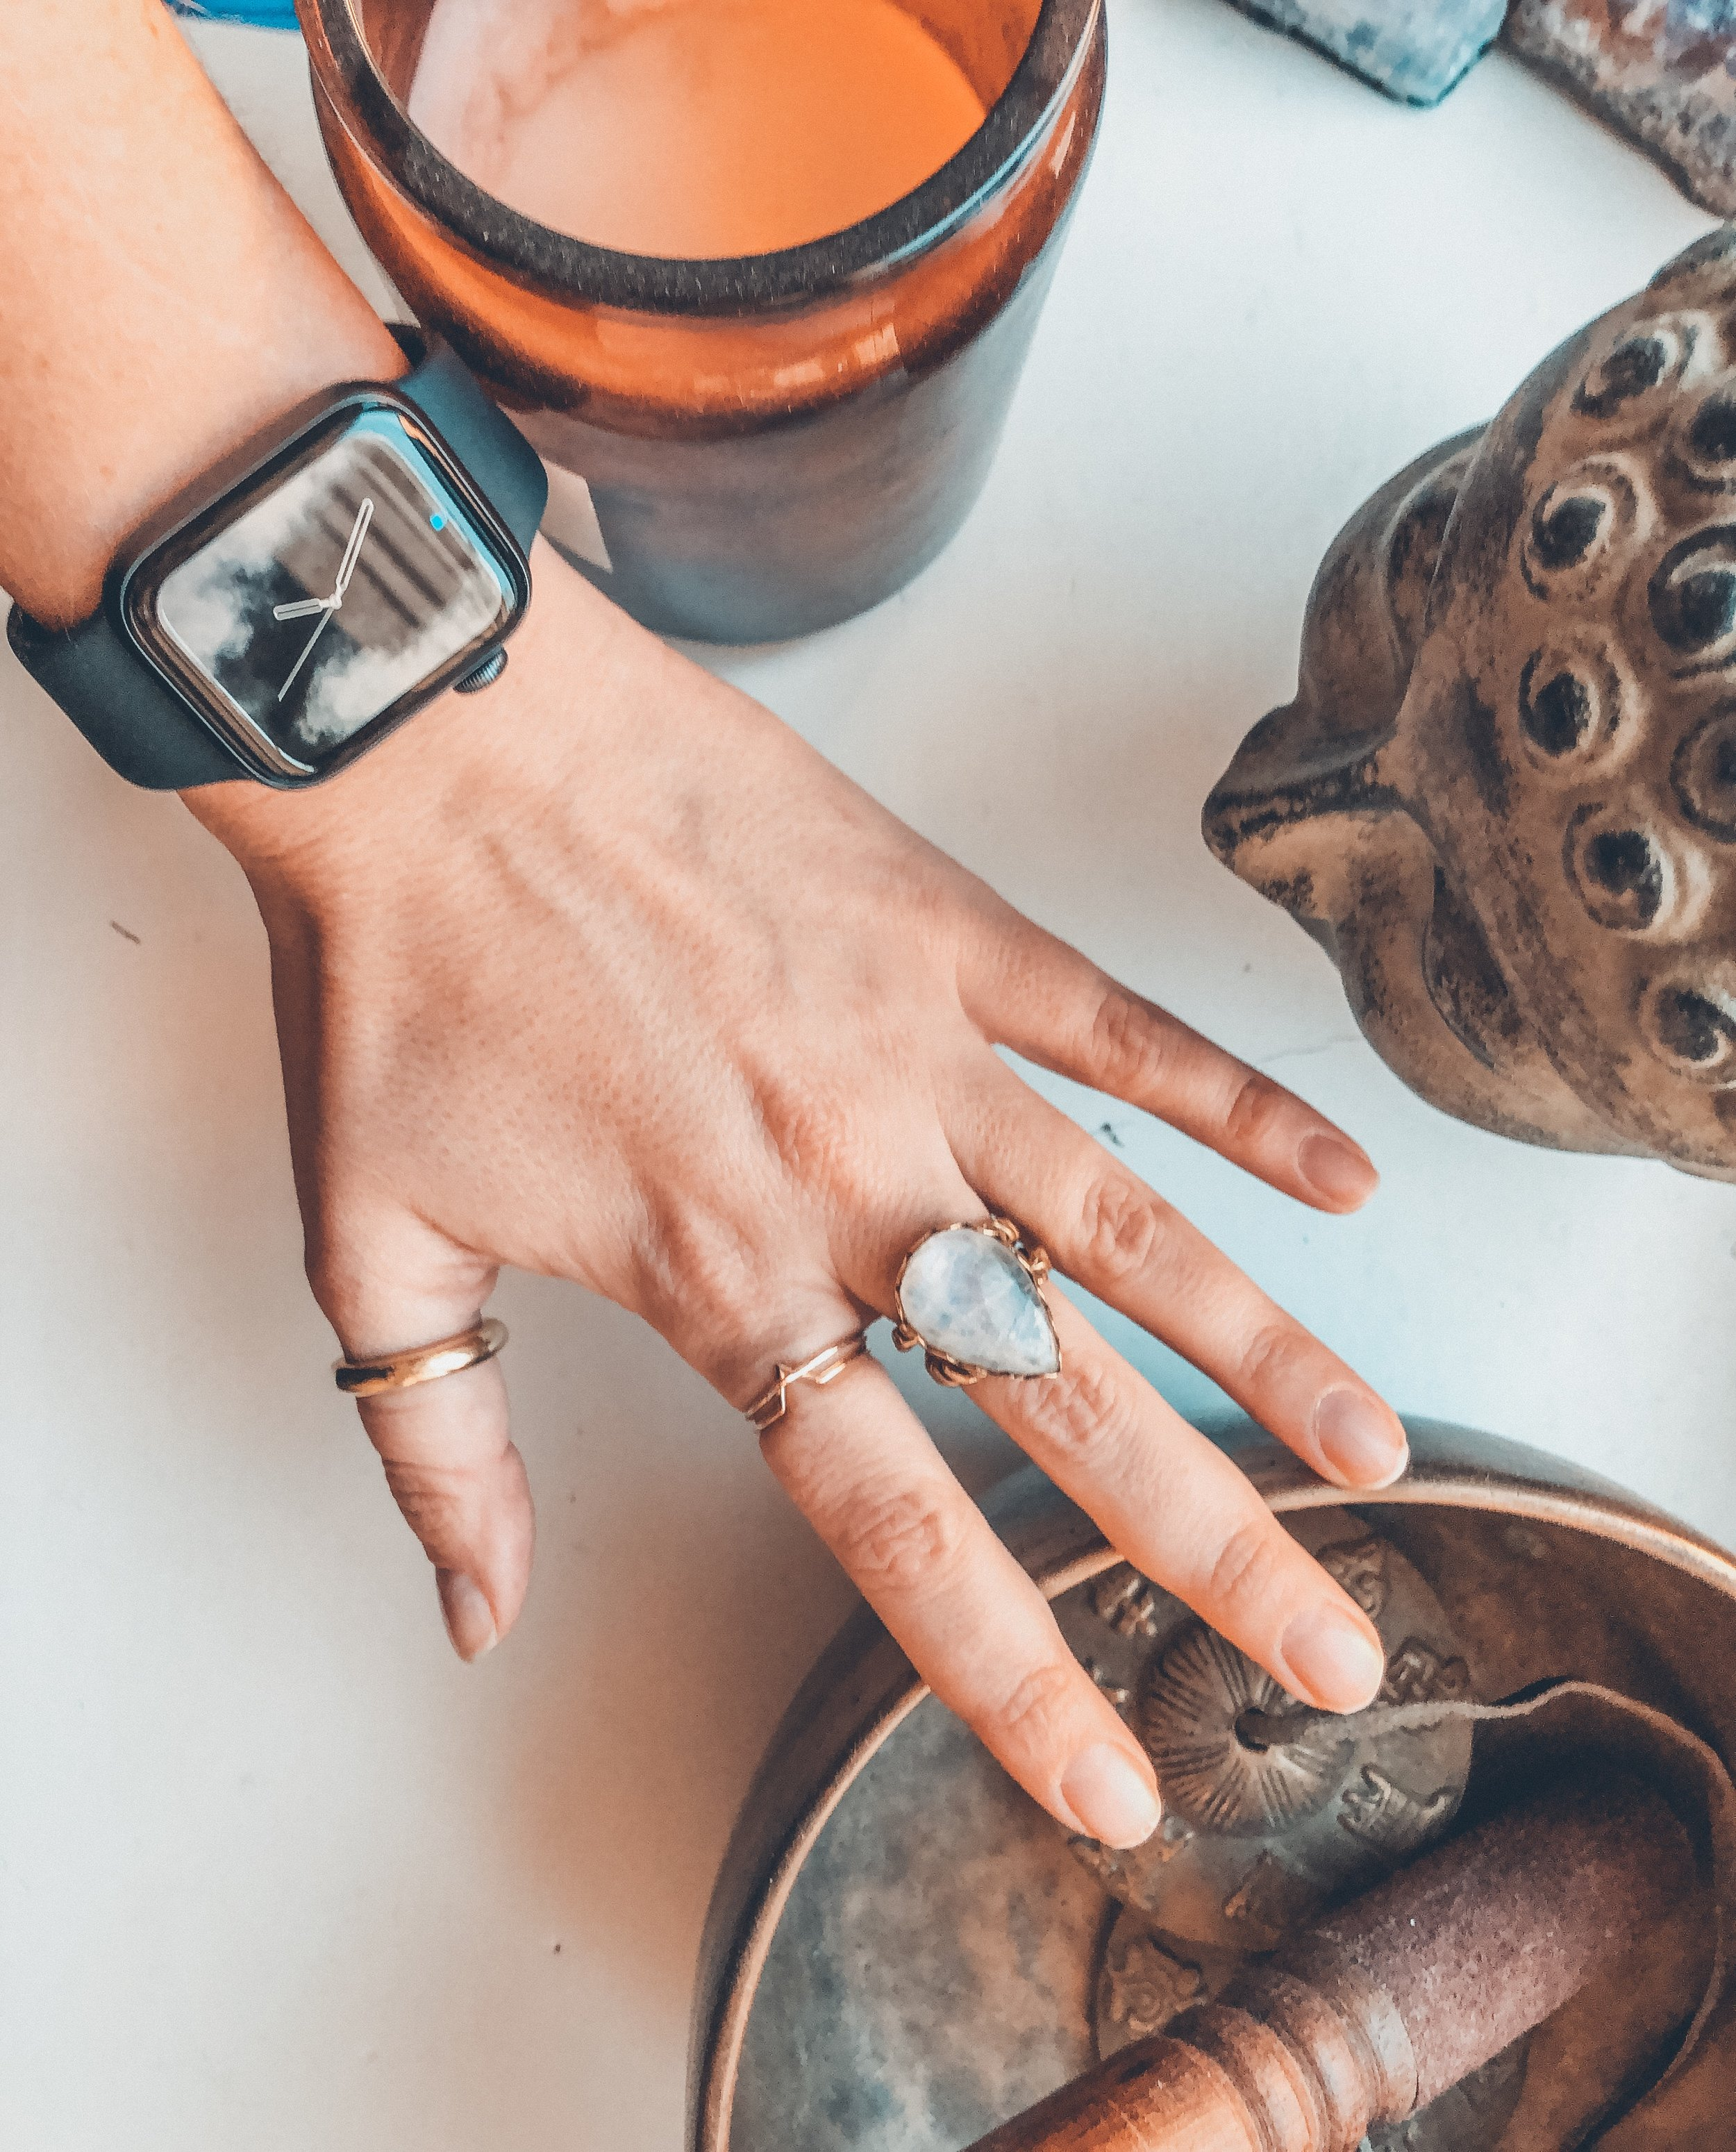 An Apple Watch, Buddha, Zafiro jewelry, singing bowls and candles. What else do you need?